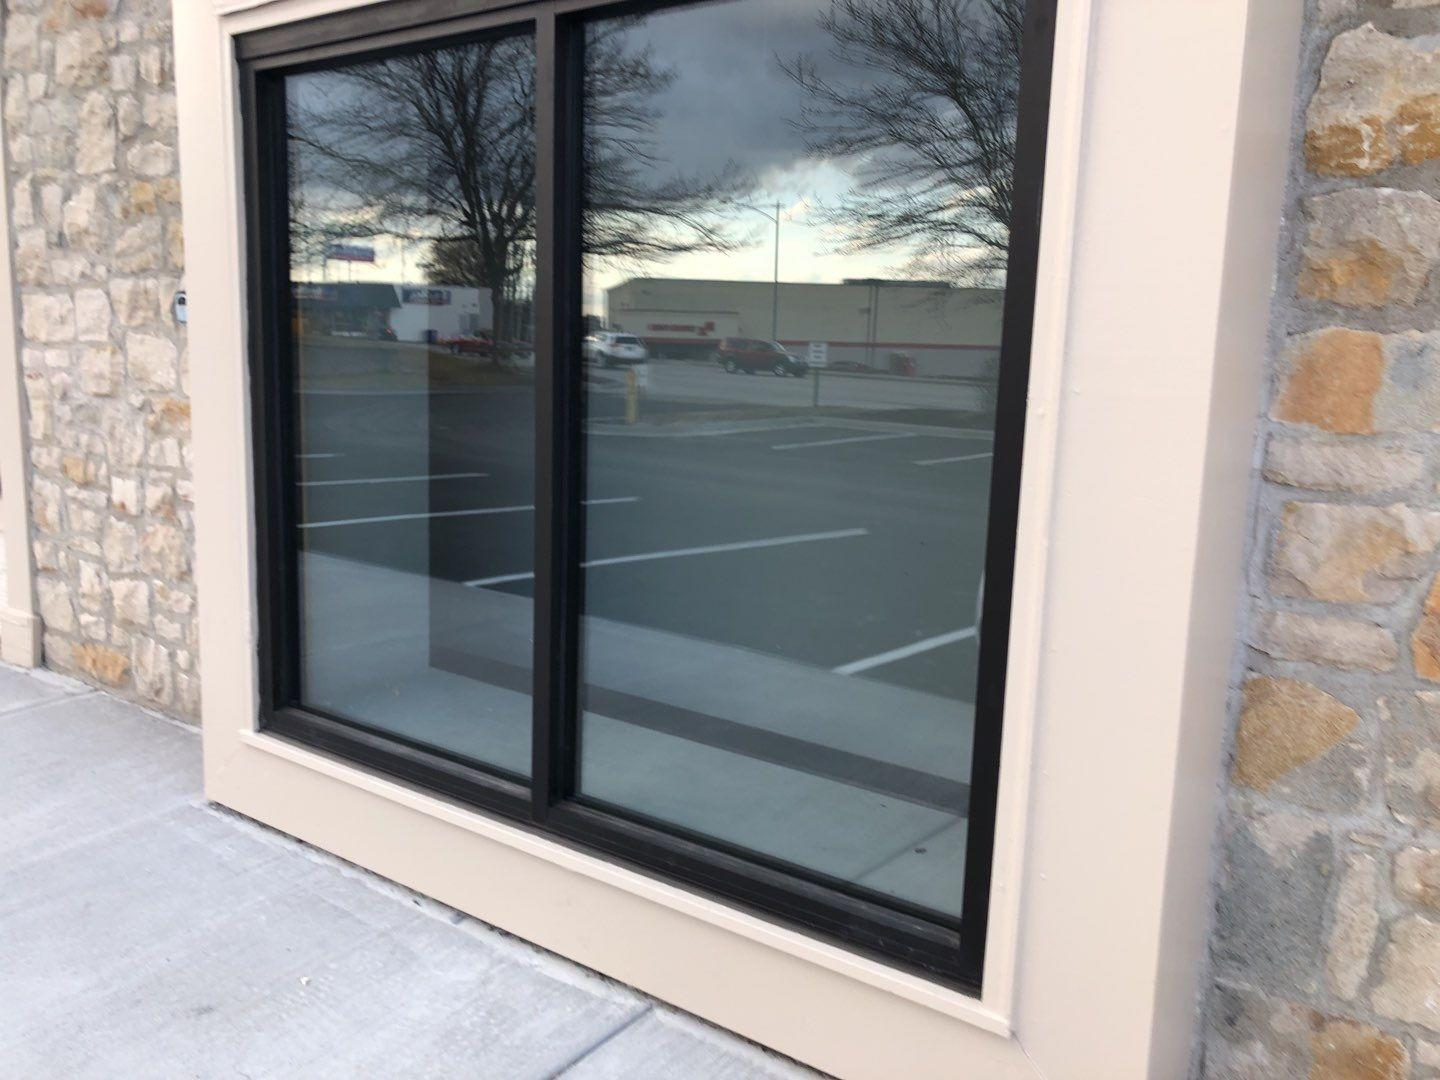 Grandview Gateway Strip Mall Window Replacements in Grandview, MO - After Photo